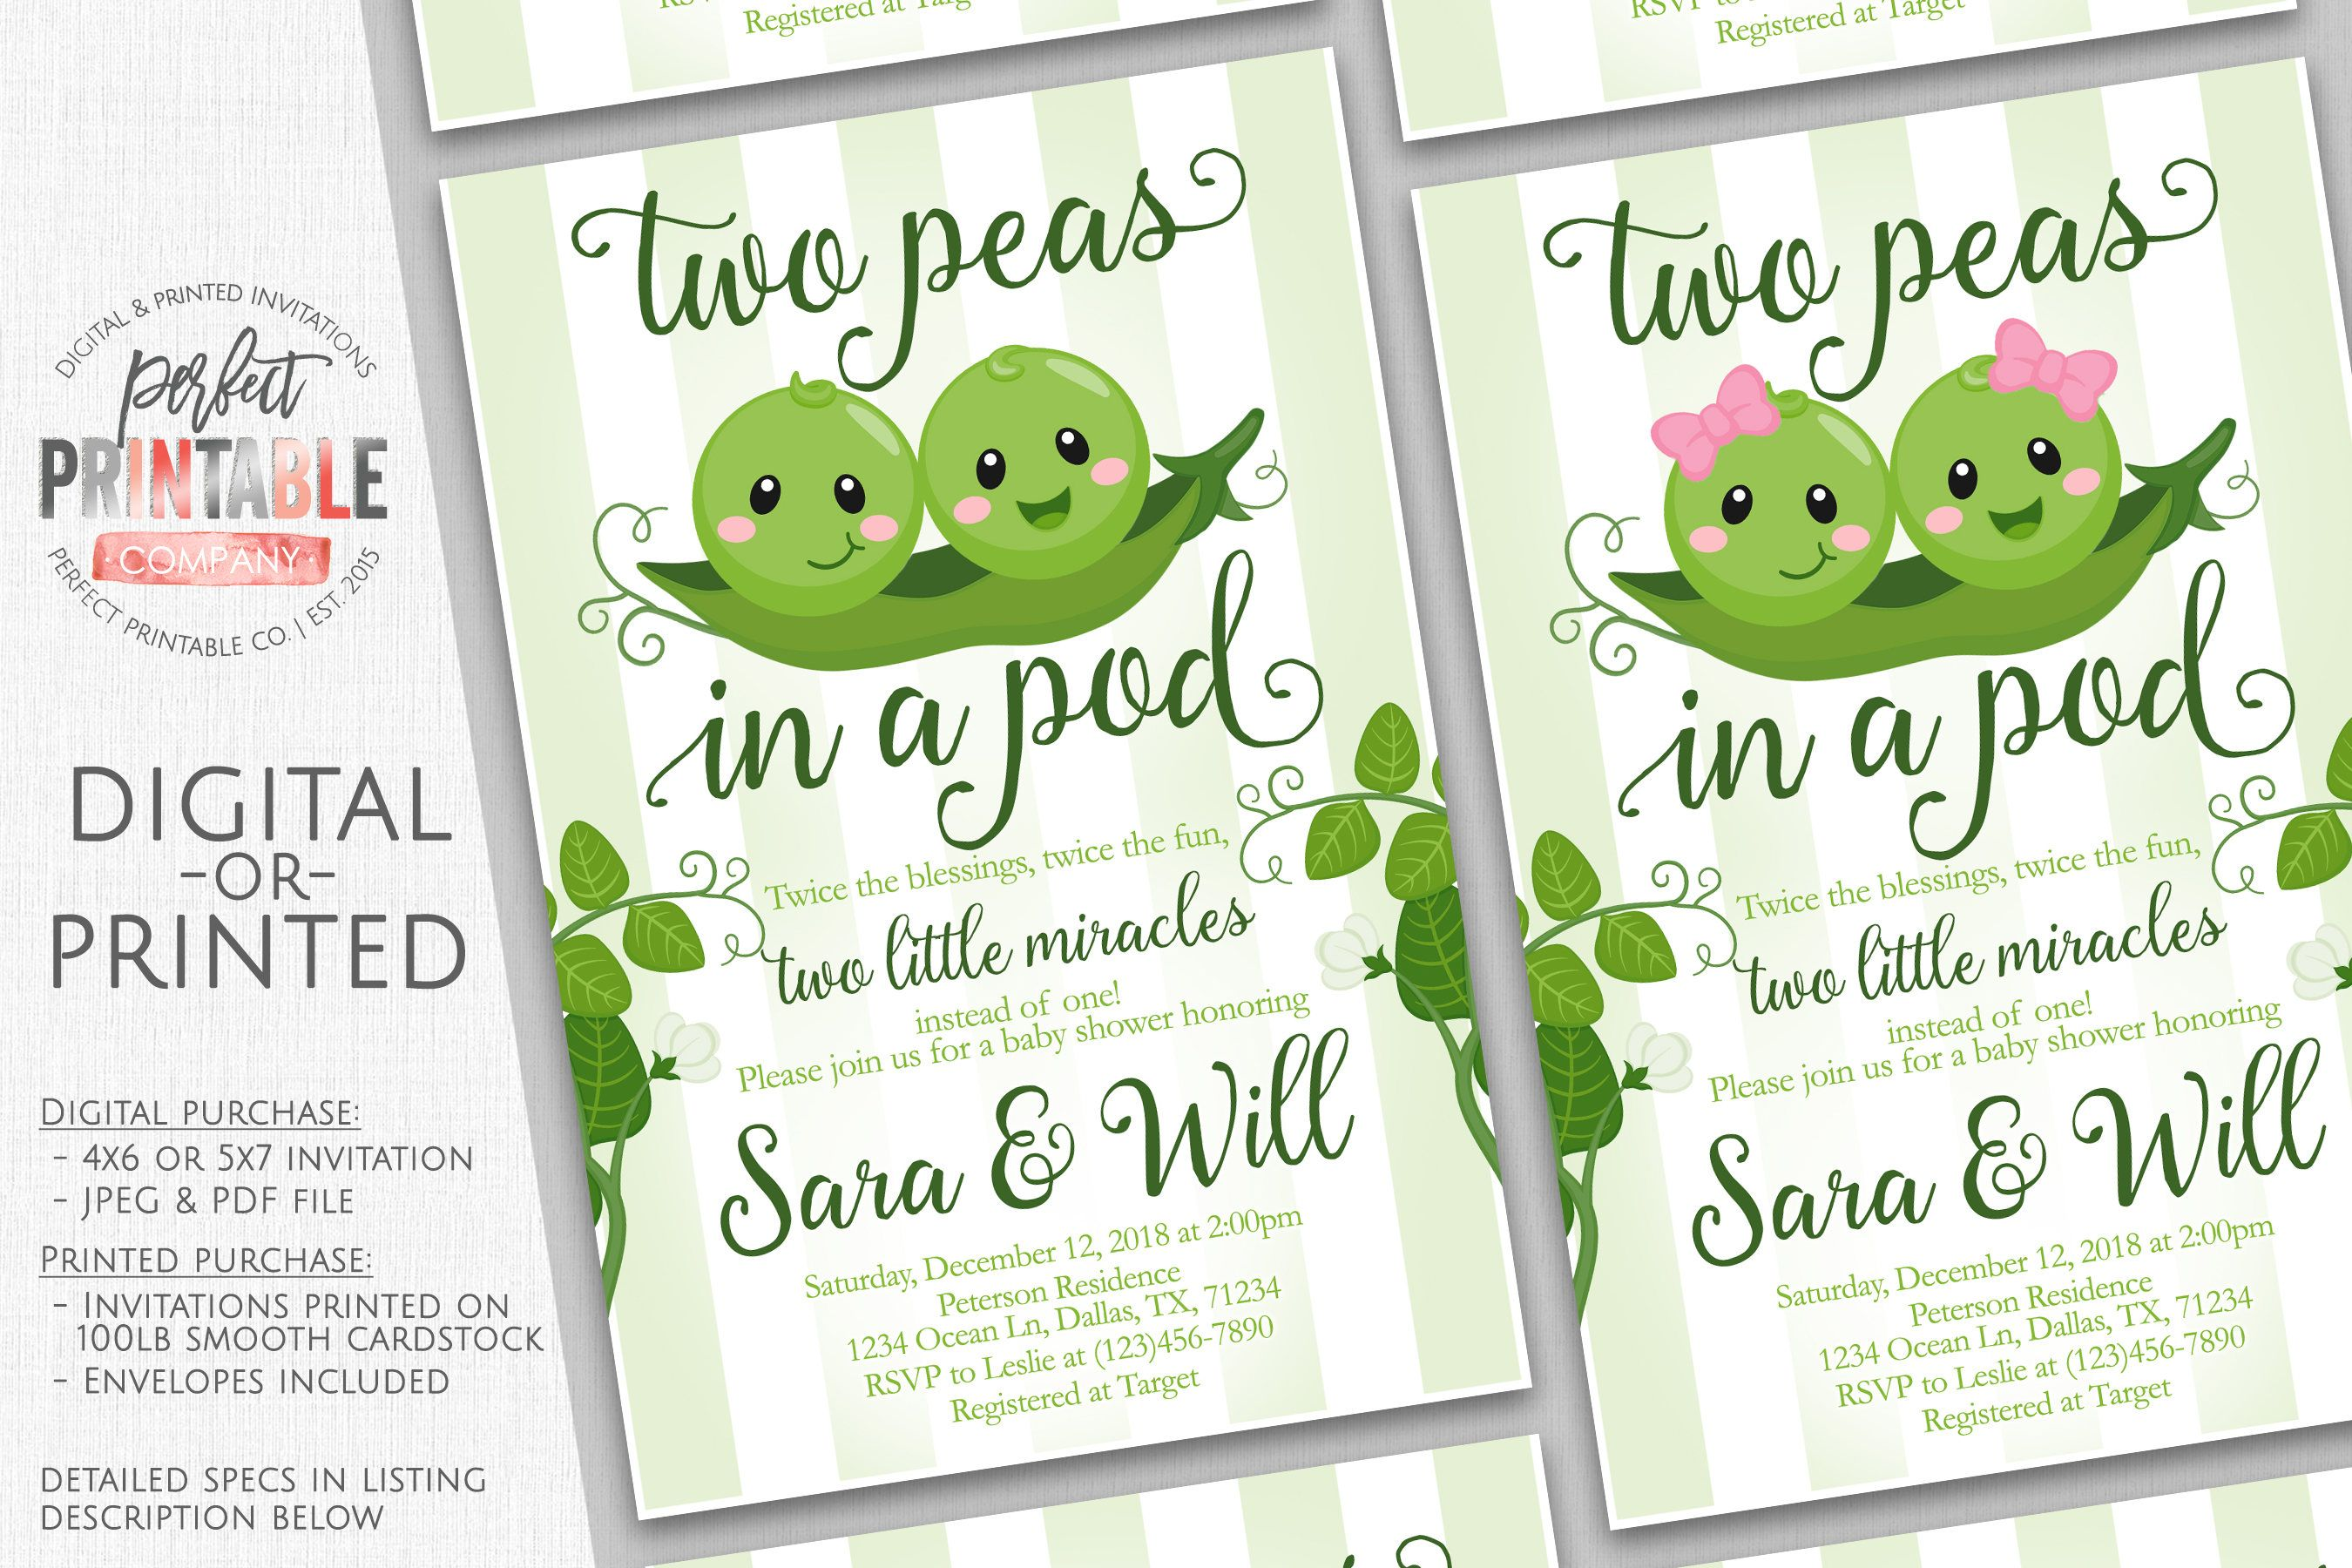 Two Peas in a Pod Baby Shower Invitation, Twins Baby Shower ...